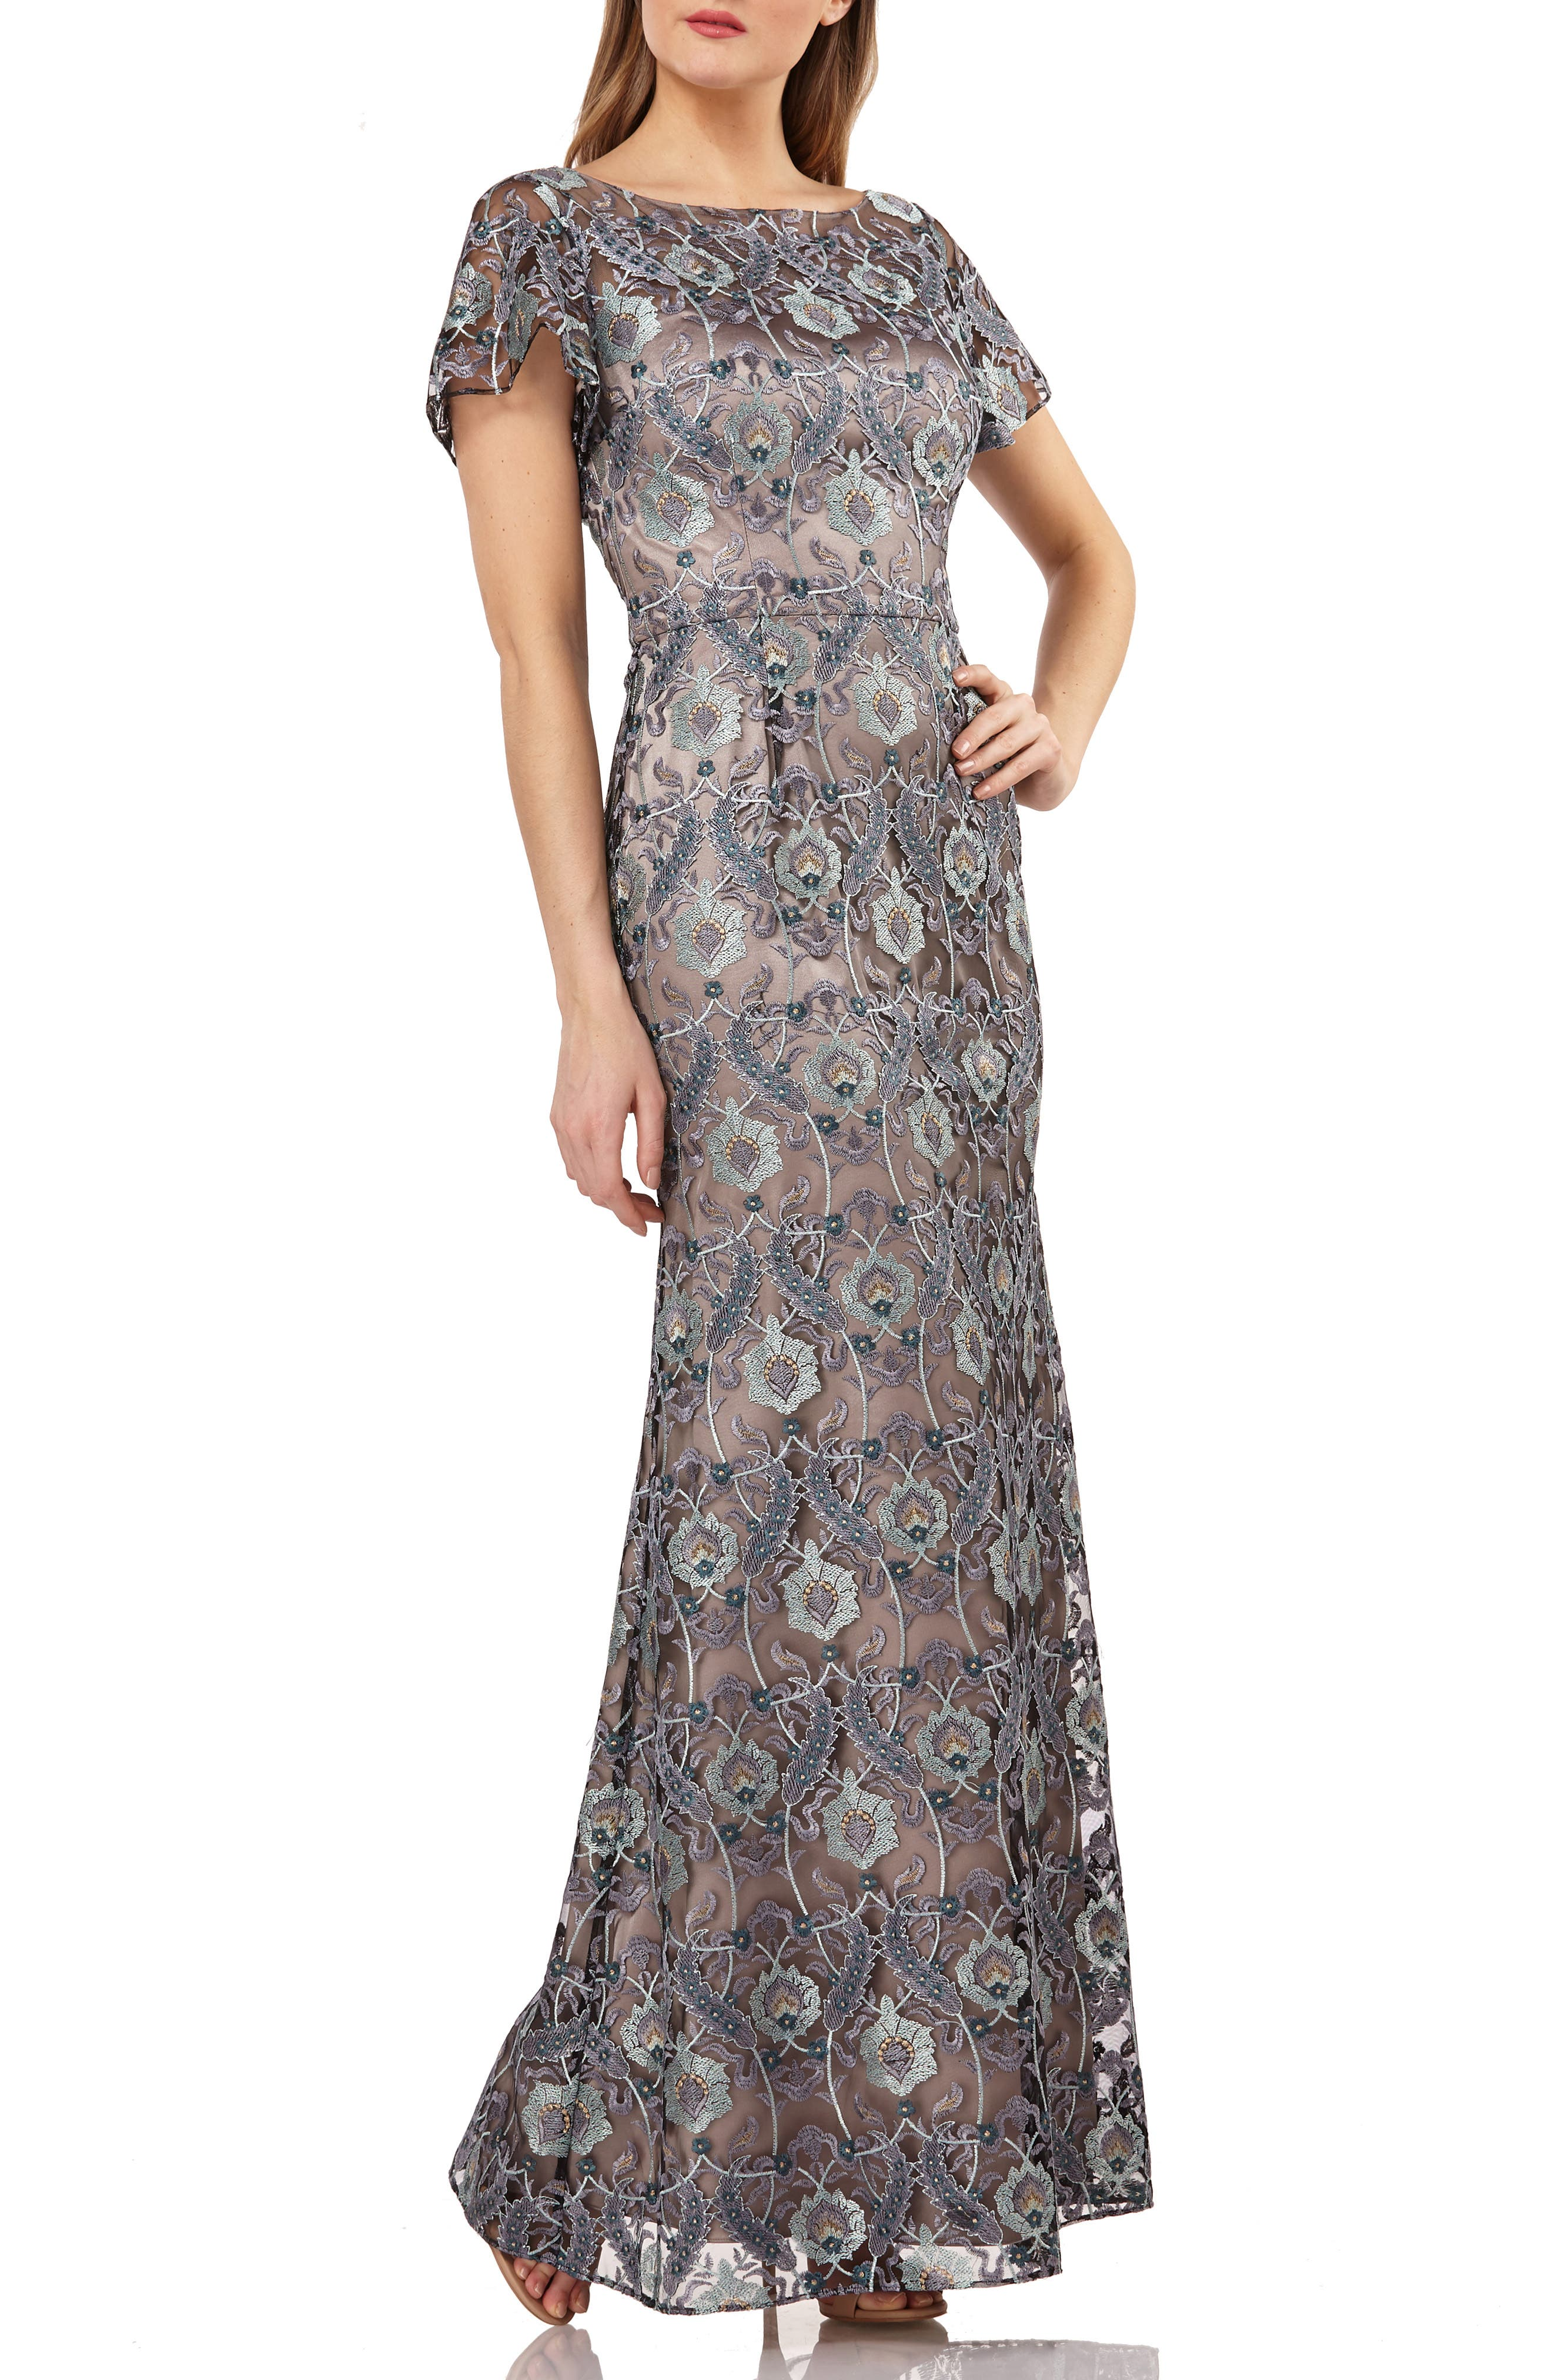 Js Collection Embroidered Overlay Illusion Lace Evening Dress, Grey